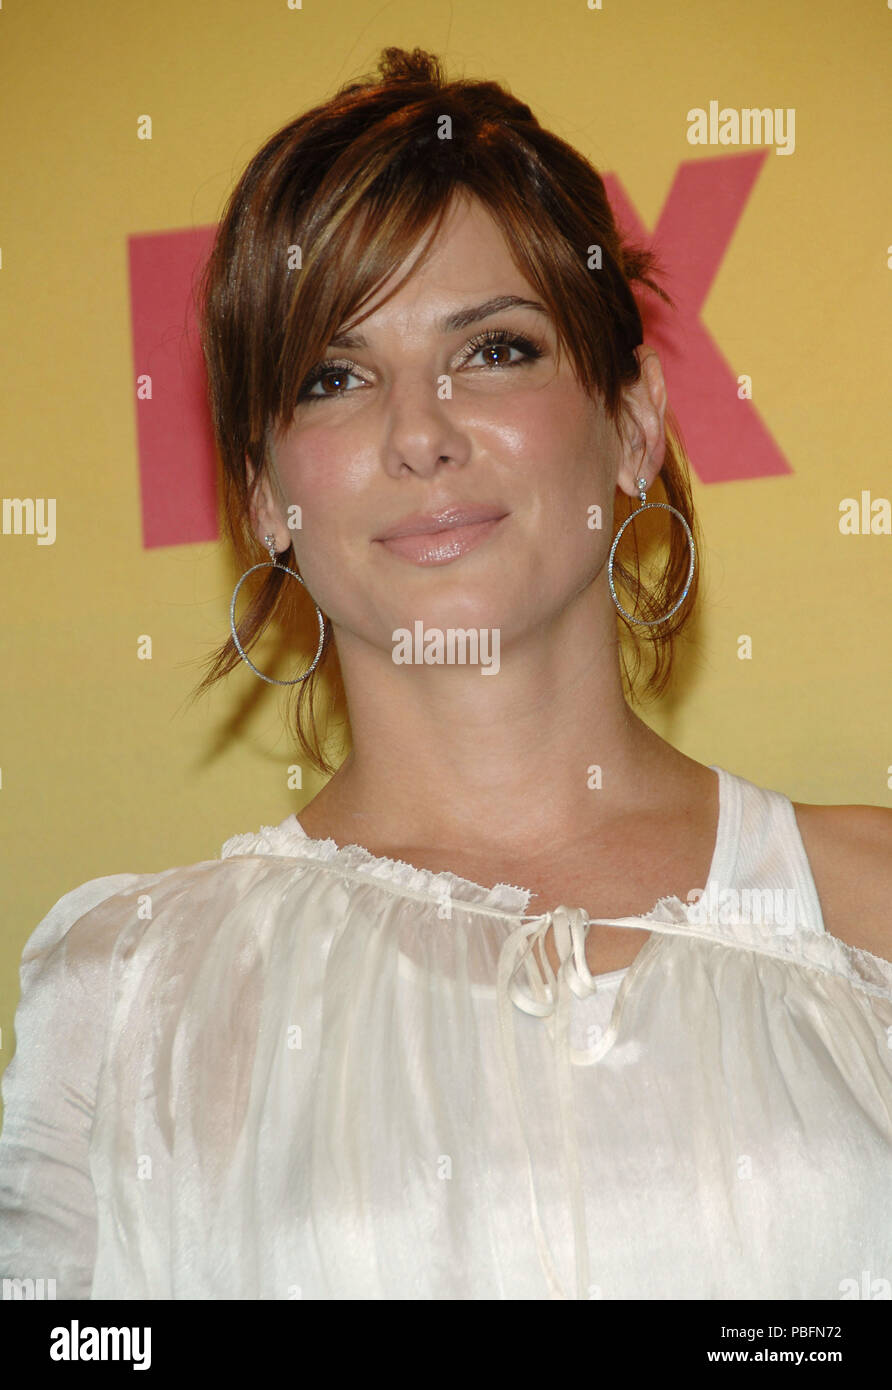 Sandra Bullock at the TEEN CHOICE Awards at the Universal Amphitheatre in  Los Angeles. August